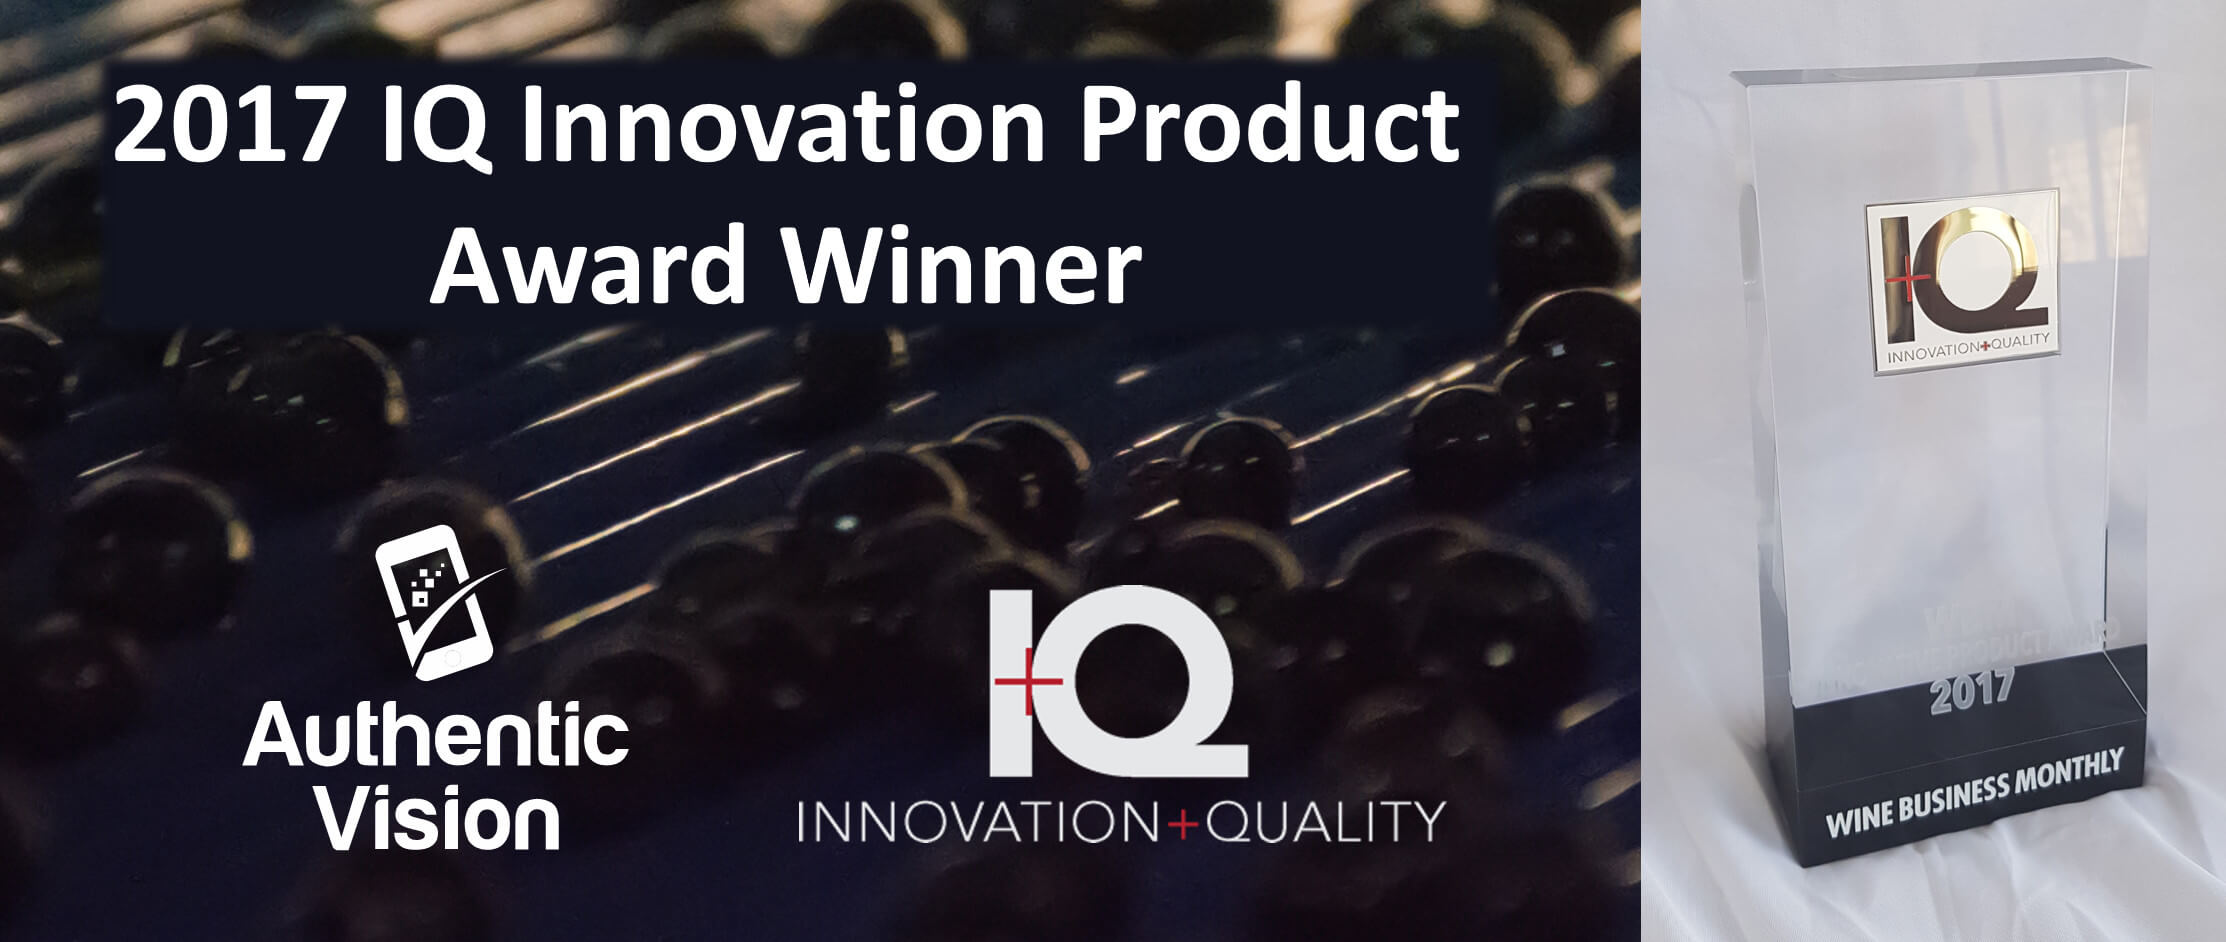 Authentic Vision wins IQ Award anti Counterfeit Innovation